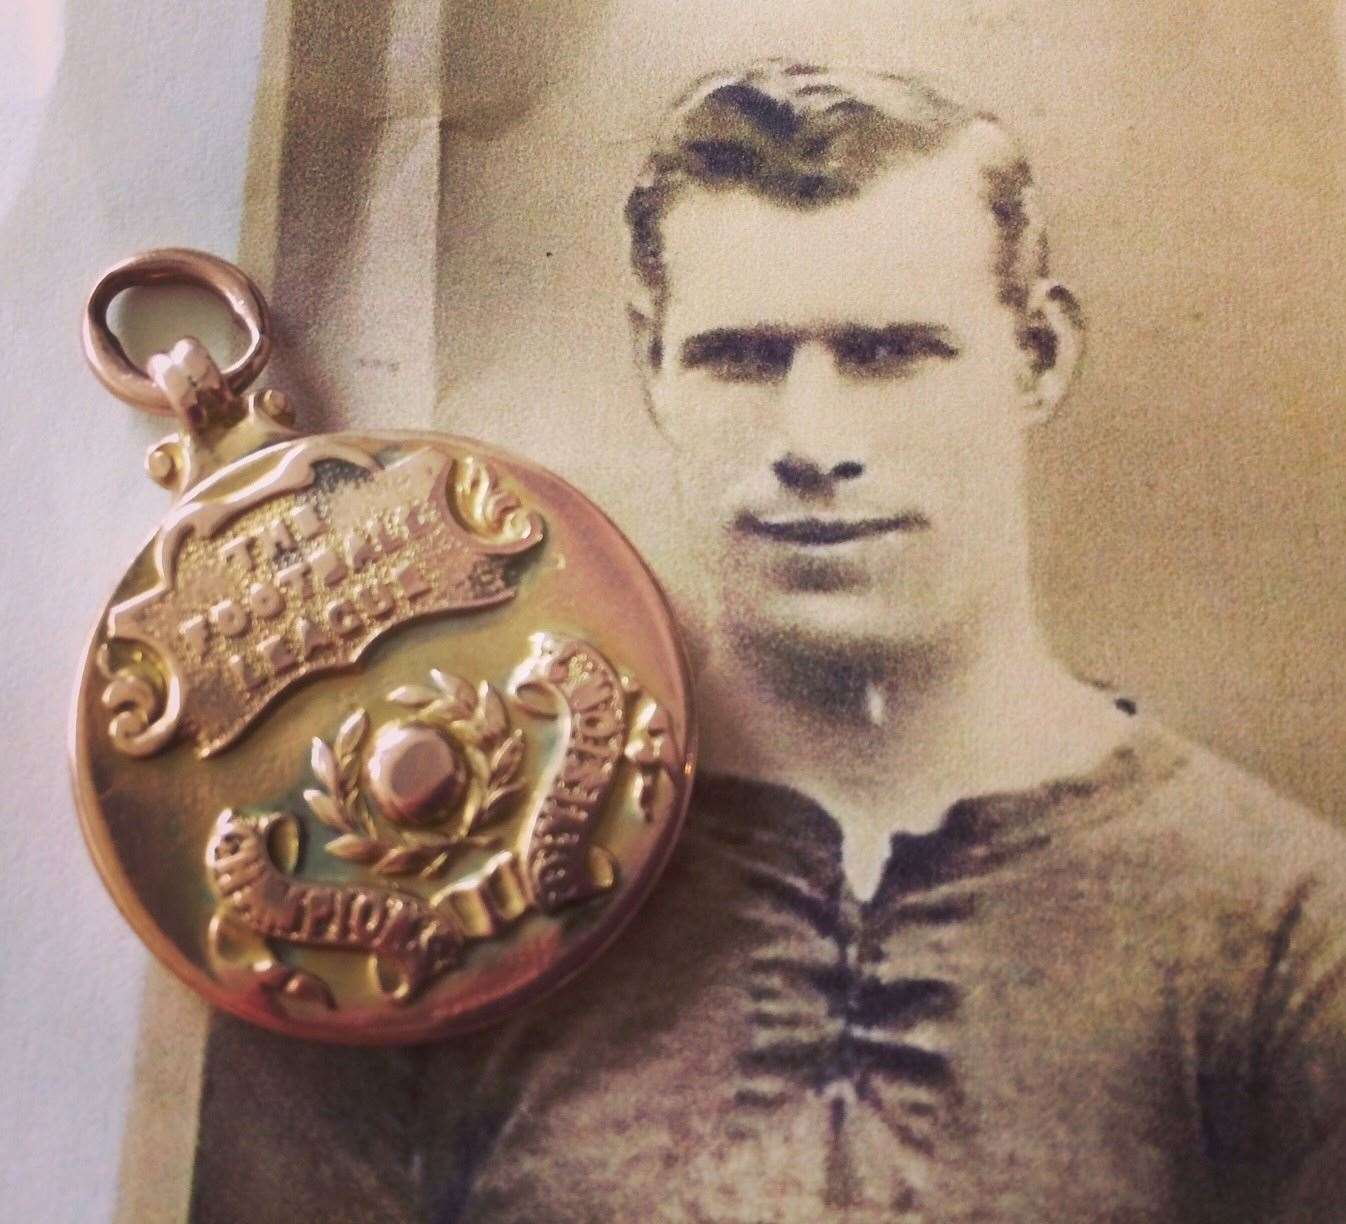 Jack (John) Wren and his Notts County Medal - credit Hansons (8489269)